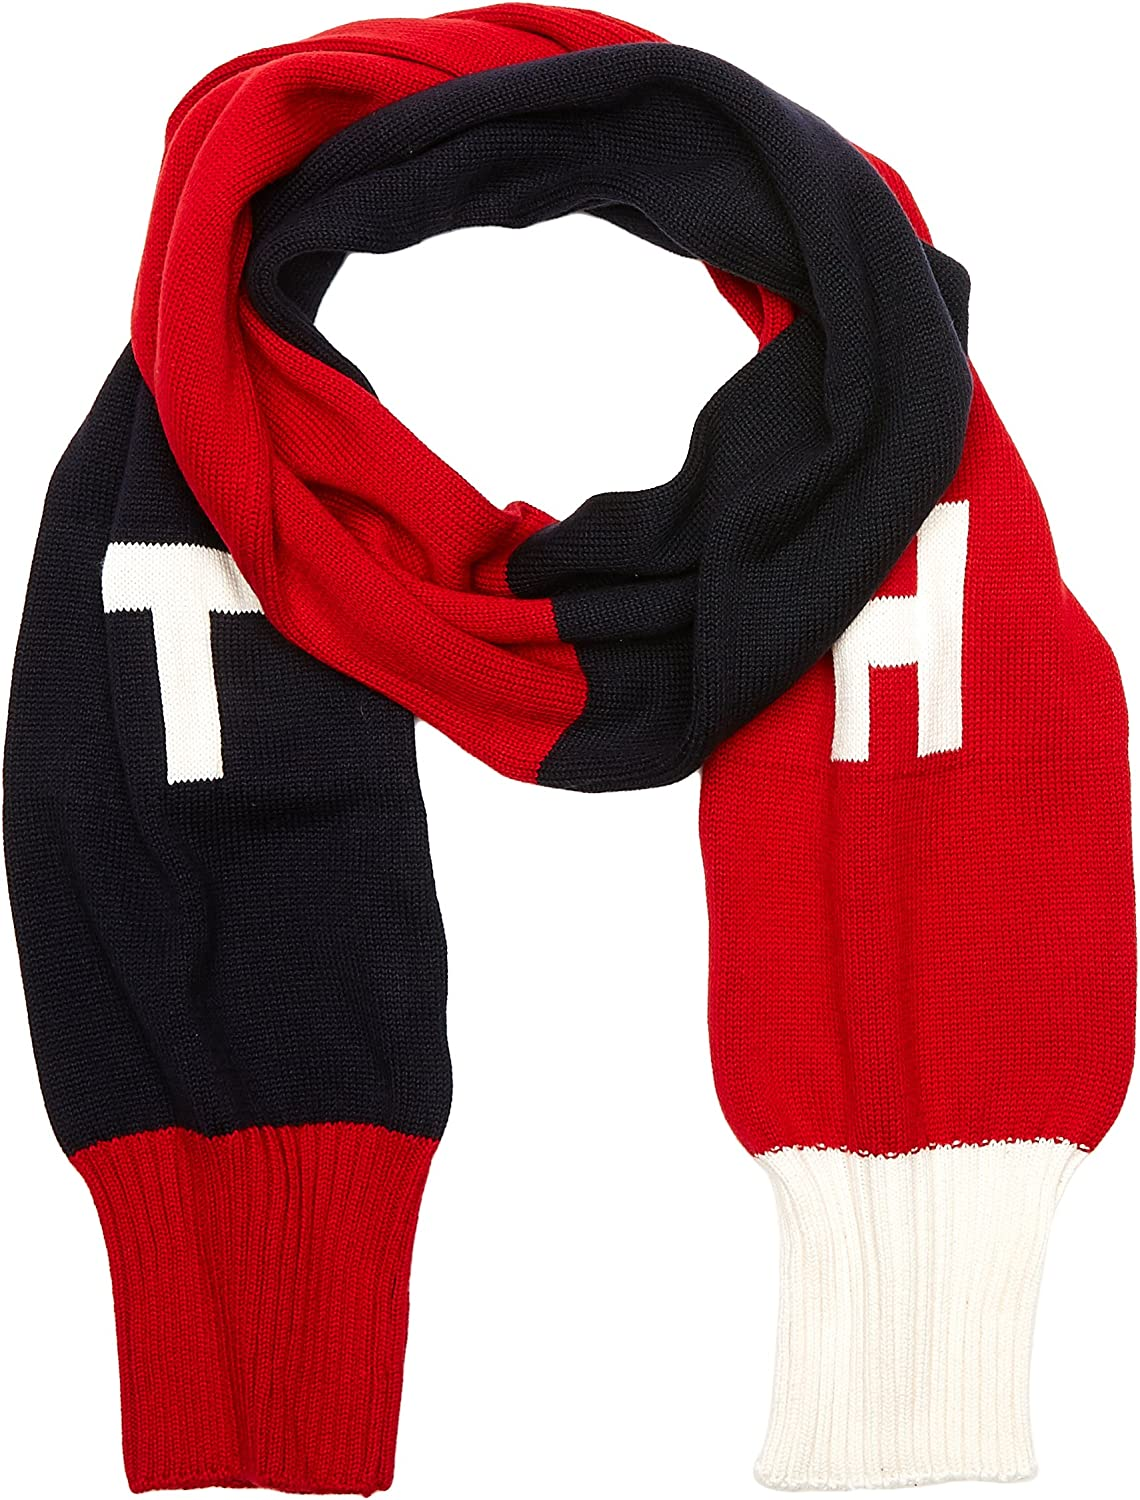 TOMMY HILFIGER TH Denim Knit Scarf Bufanda, Multicolor (Corporate Clrs), única (Talla del Fabricante: OS) para Mujer